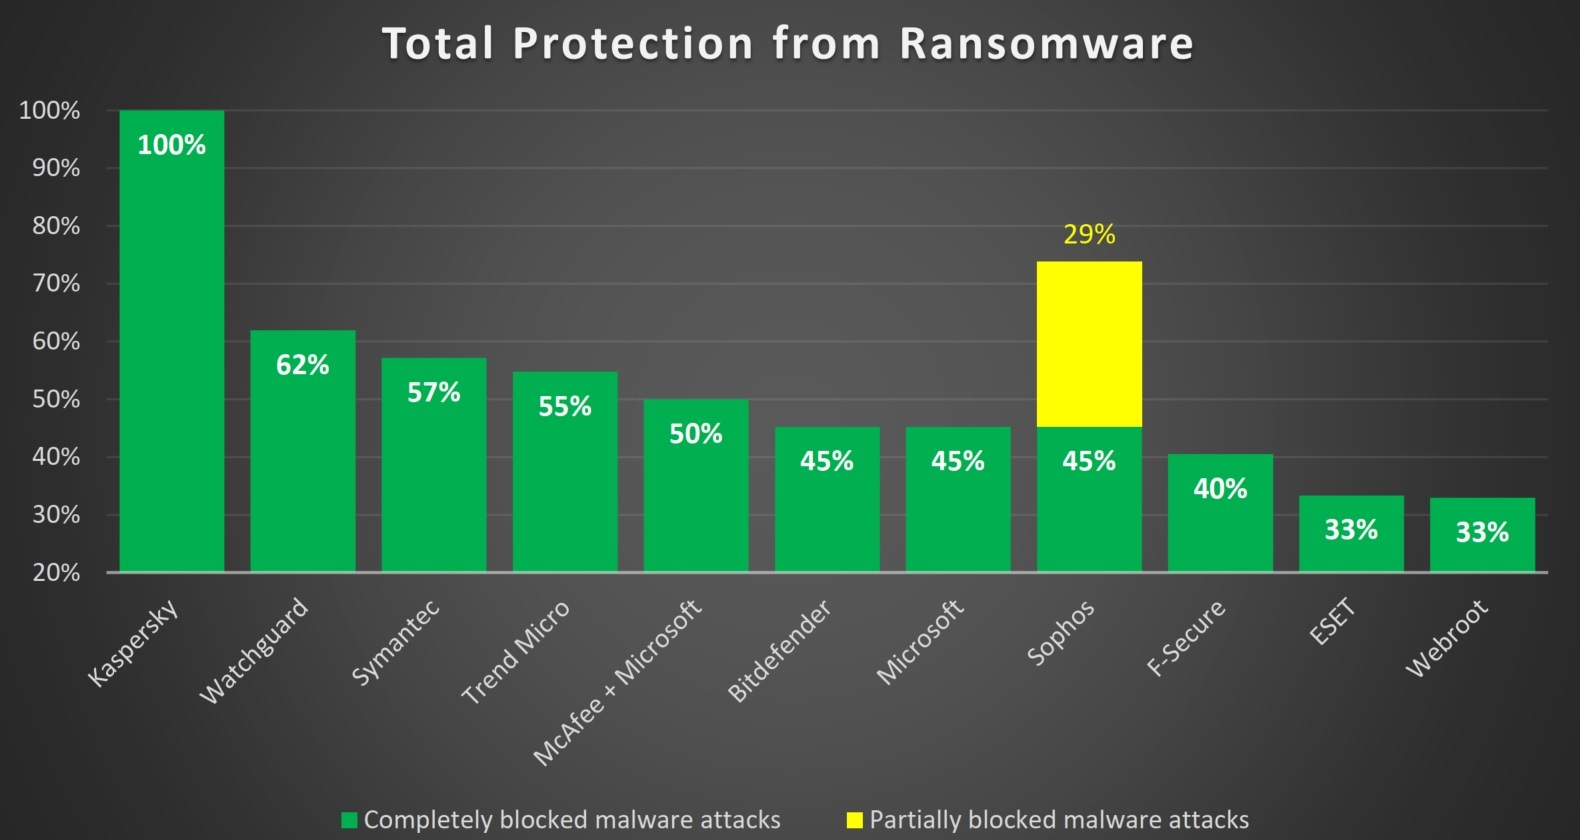 What is the most effective security solution against ransomware?